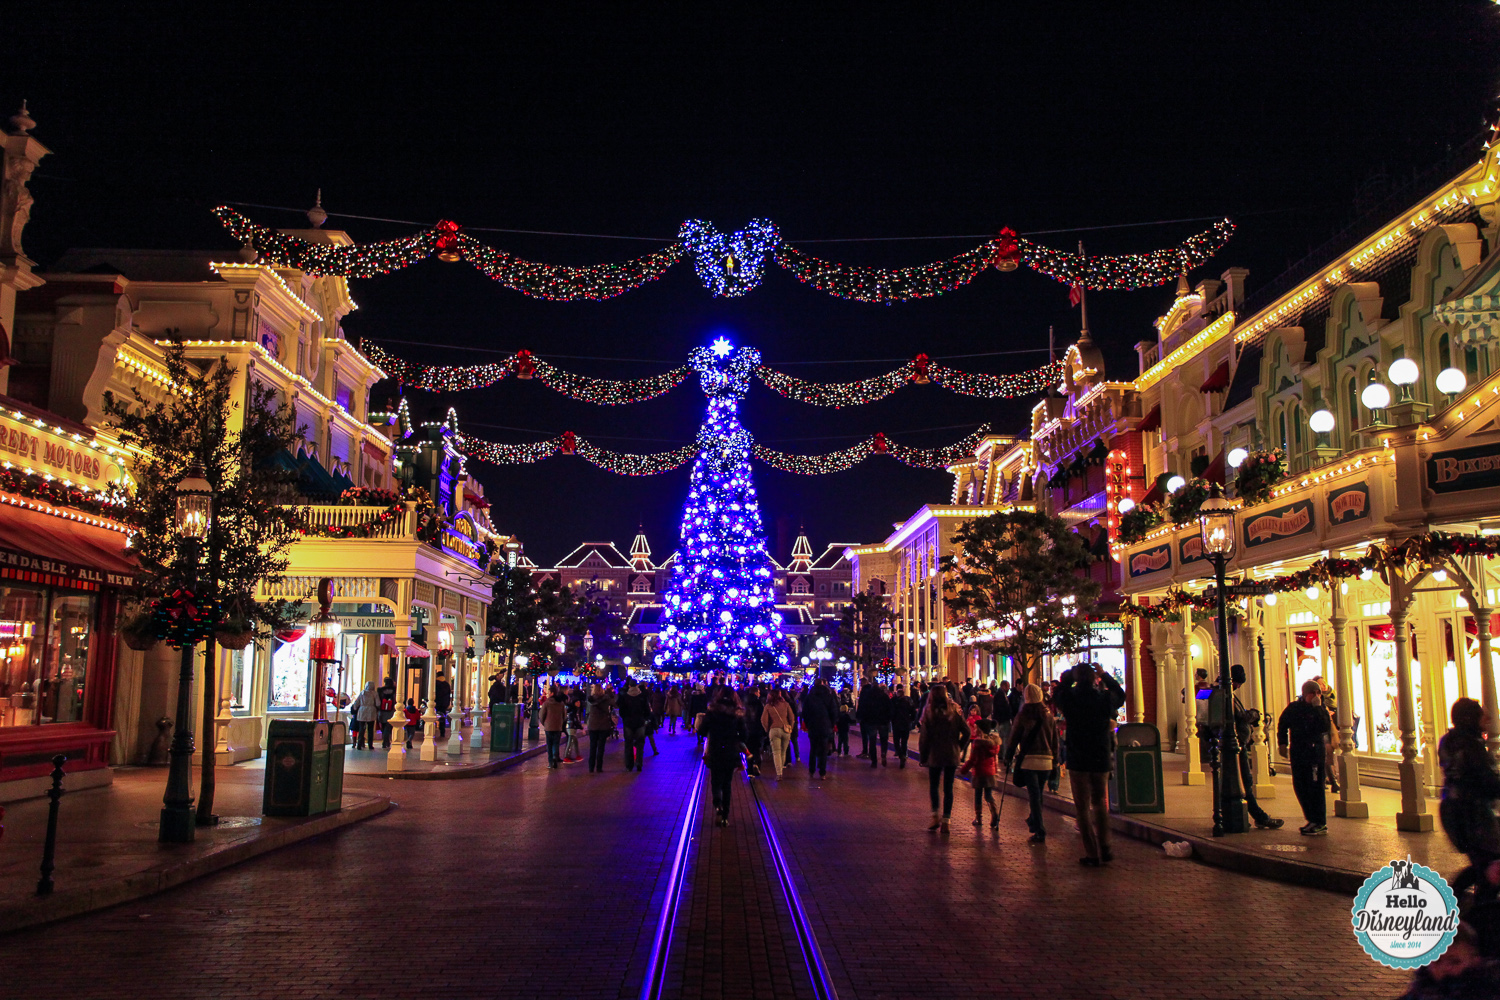 Le Noël Enchanté de Disneyland Paris 2015 | Hello Disneyland : Le ...